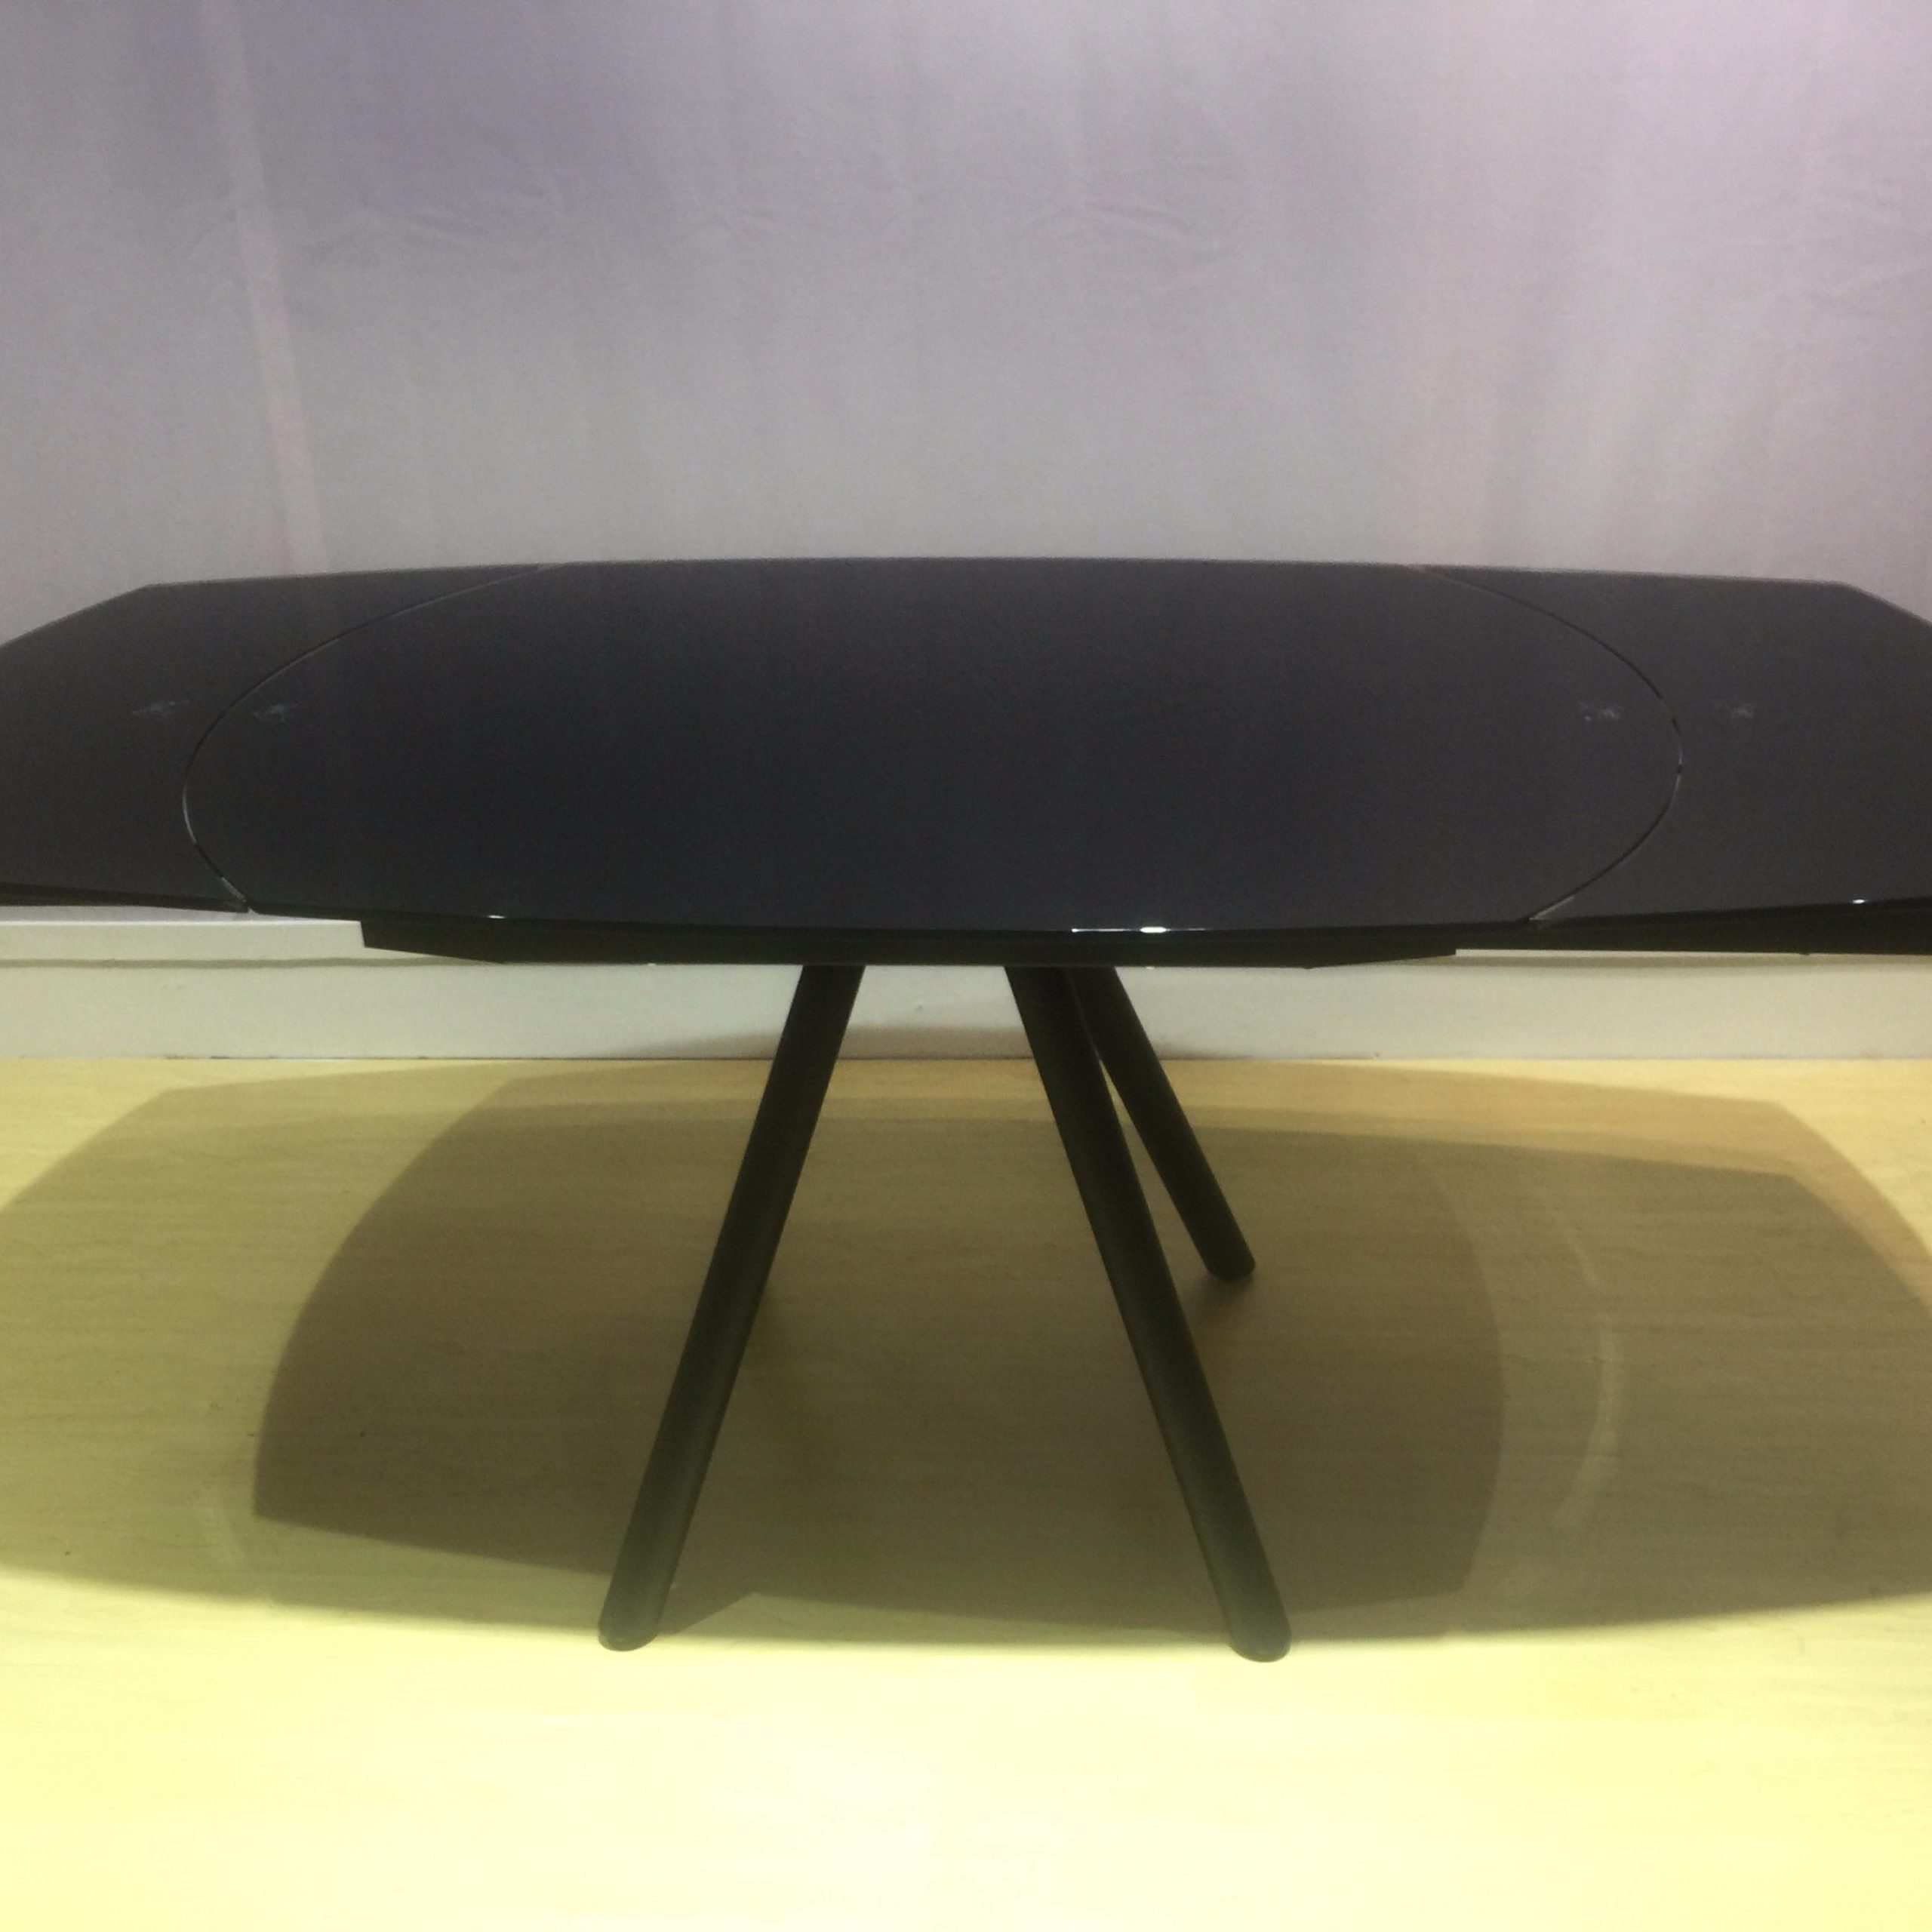 [%[Hot Item] Black Painted Tempered Glass Dining Table With Metal Legs For Rotation Table Top Pertaining To 2018 Glass Dining Tables With Metal Legs|Glass Dining Tables With Metal Legs Intended For Best And Newest [Hot Item] Black Painted Tempered Glass Dining Table With Metal Legs For Rotation Table Top|Most Recent Glass Dining Tables With Metal Legs Inside [Hot Item] Black Painted Tempered Glass Dining Table With Metal Legs For Rotation Table Top|Trendy [Hot Item] Black Painted Tempered Glass Dining Table With Metal Legs For Rotation Table Top Within Glass Dining Tables With Metal Legs%] (View 12 of 30)